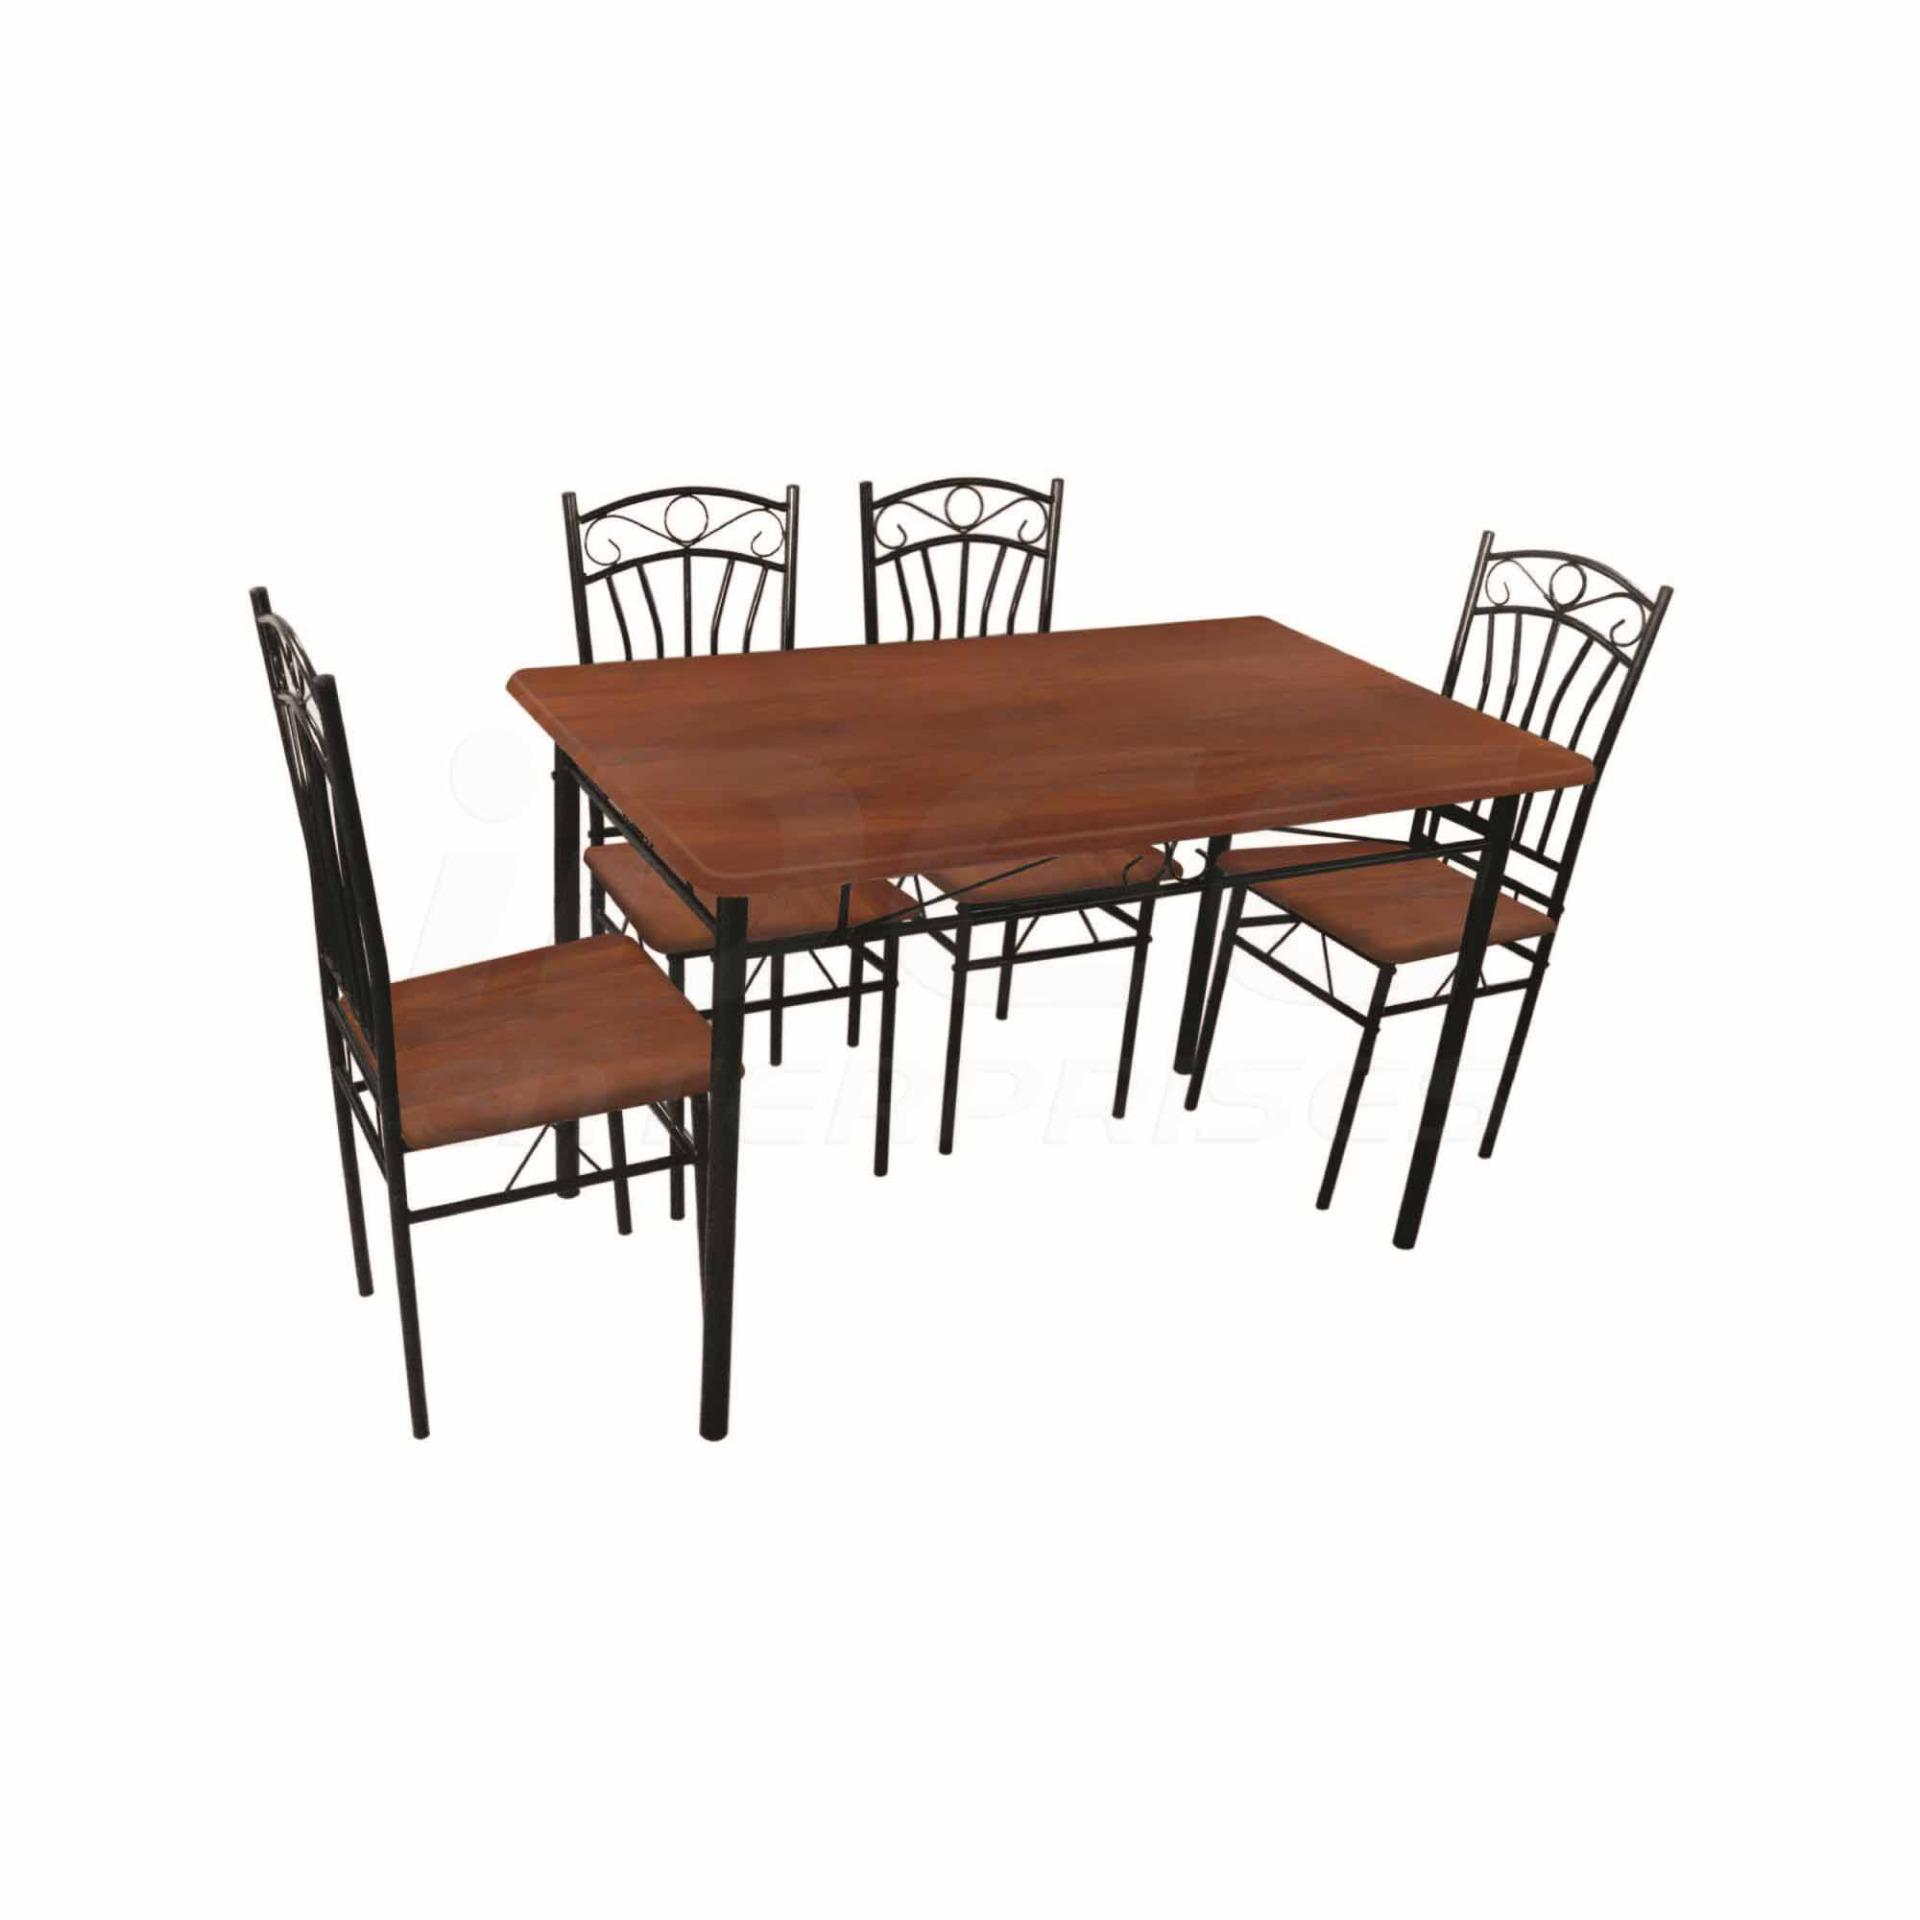 Tailee DS 022 4 Seater Dining Set (Coffee)